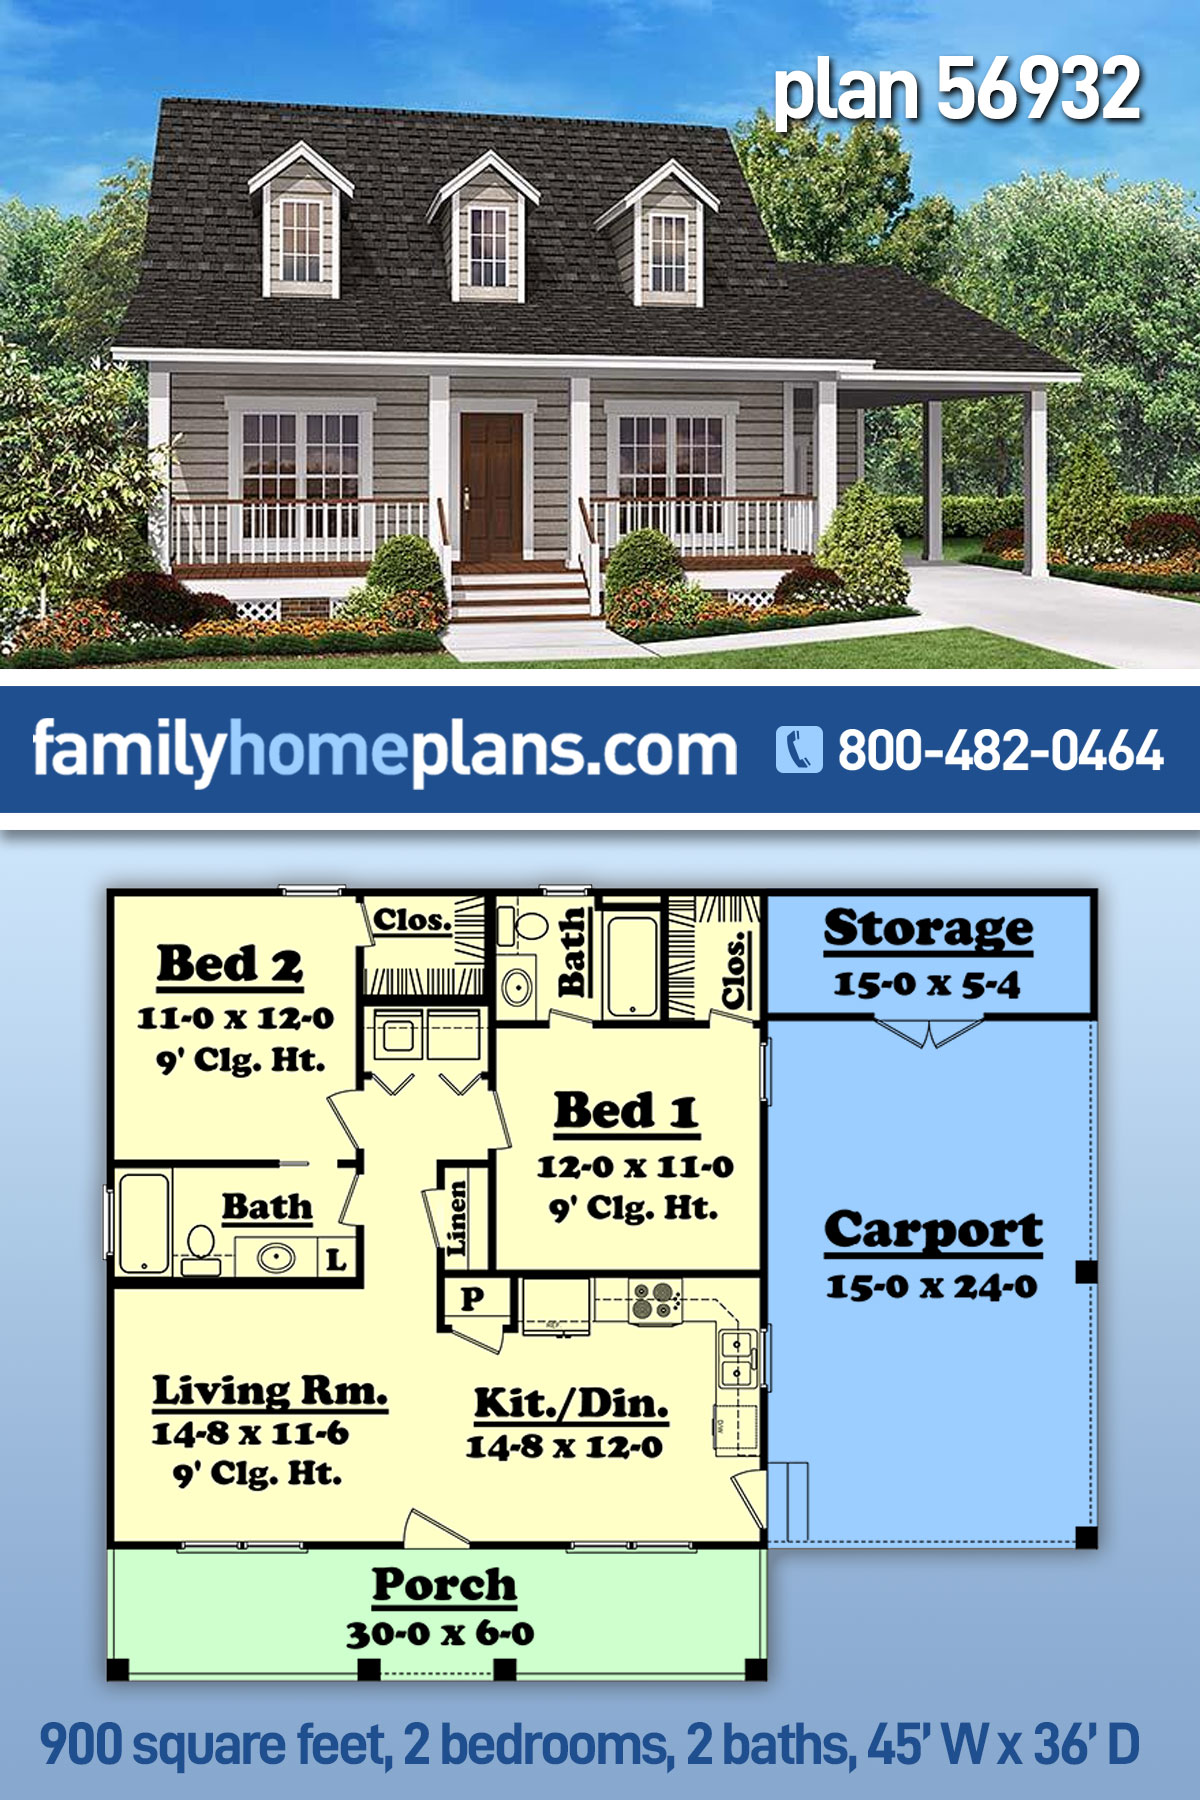 Cabin, Country, Southern House Plan 56932 with 2 Beds, 2 Baths, 1 Car Garage